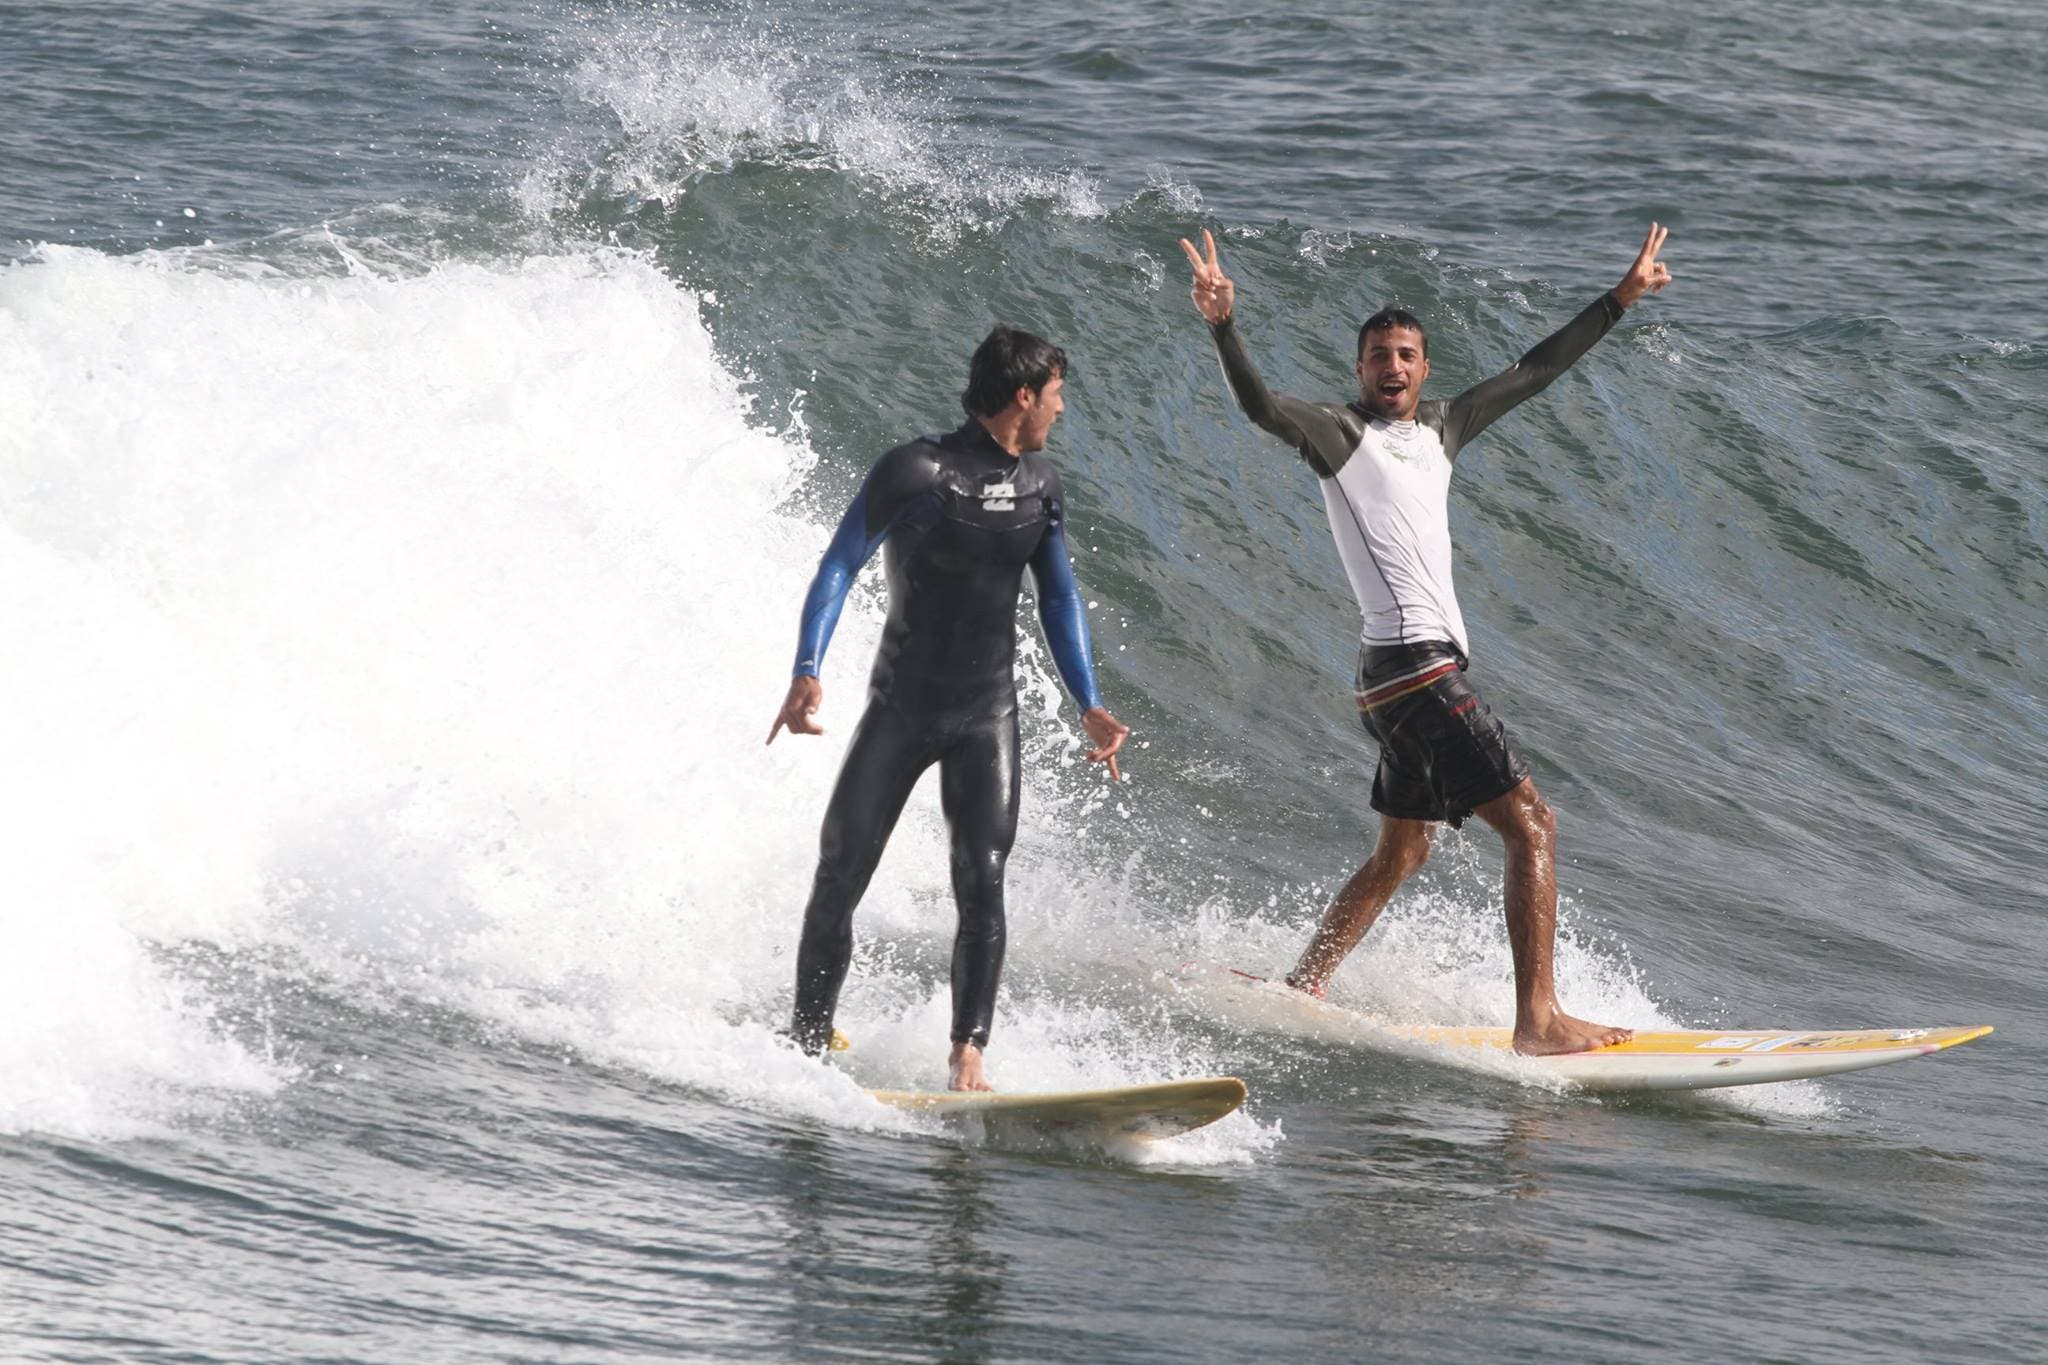 Gaza surf club (FB)